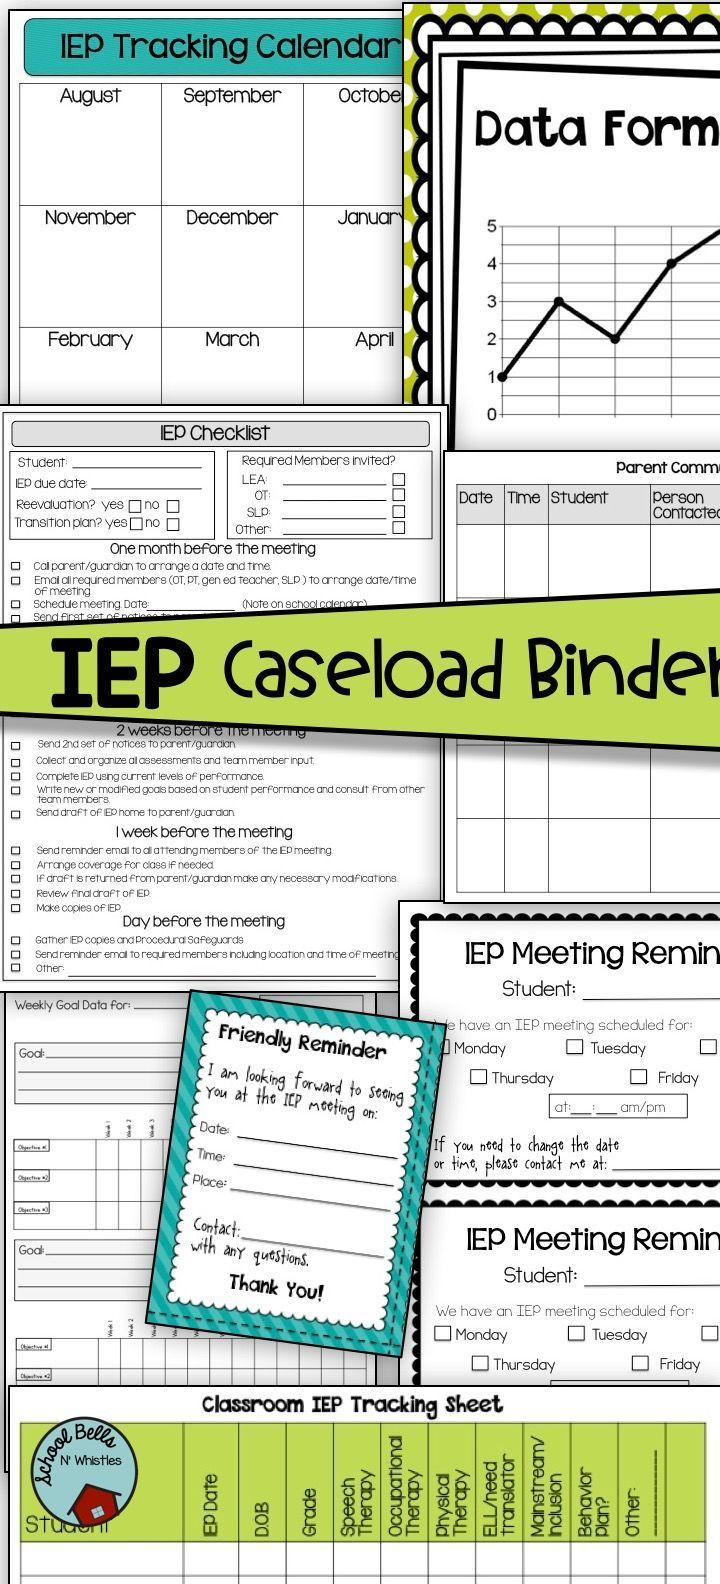 Organize and manage your IEP caseload with this IEP binder! Binder includes checklist, data forms, assessments, reminder notices, contact list, goal and benchmark forms, and more!